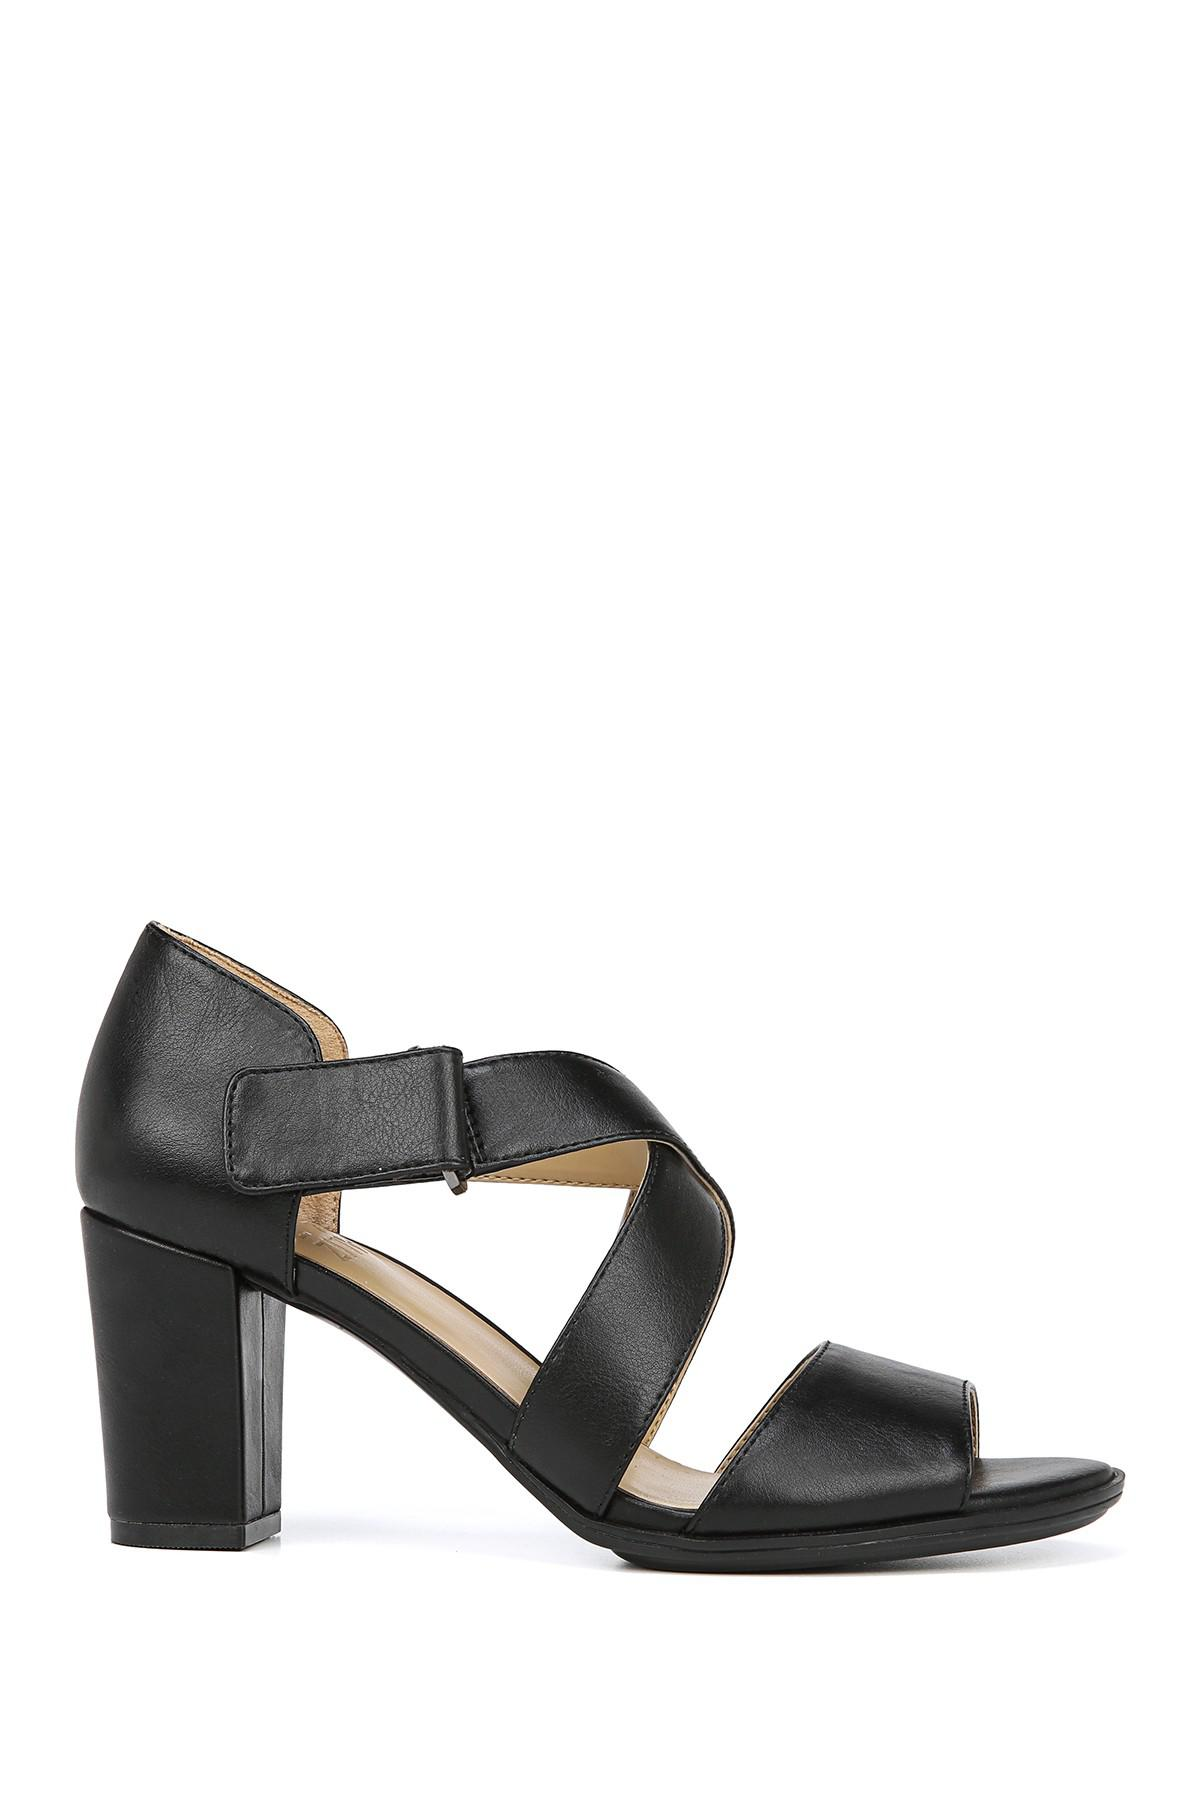 33d30a7768e9 Naturalizer - Black Lindy Sandal - Wide Width Available - Lyst. View  fullscreen